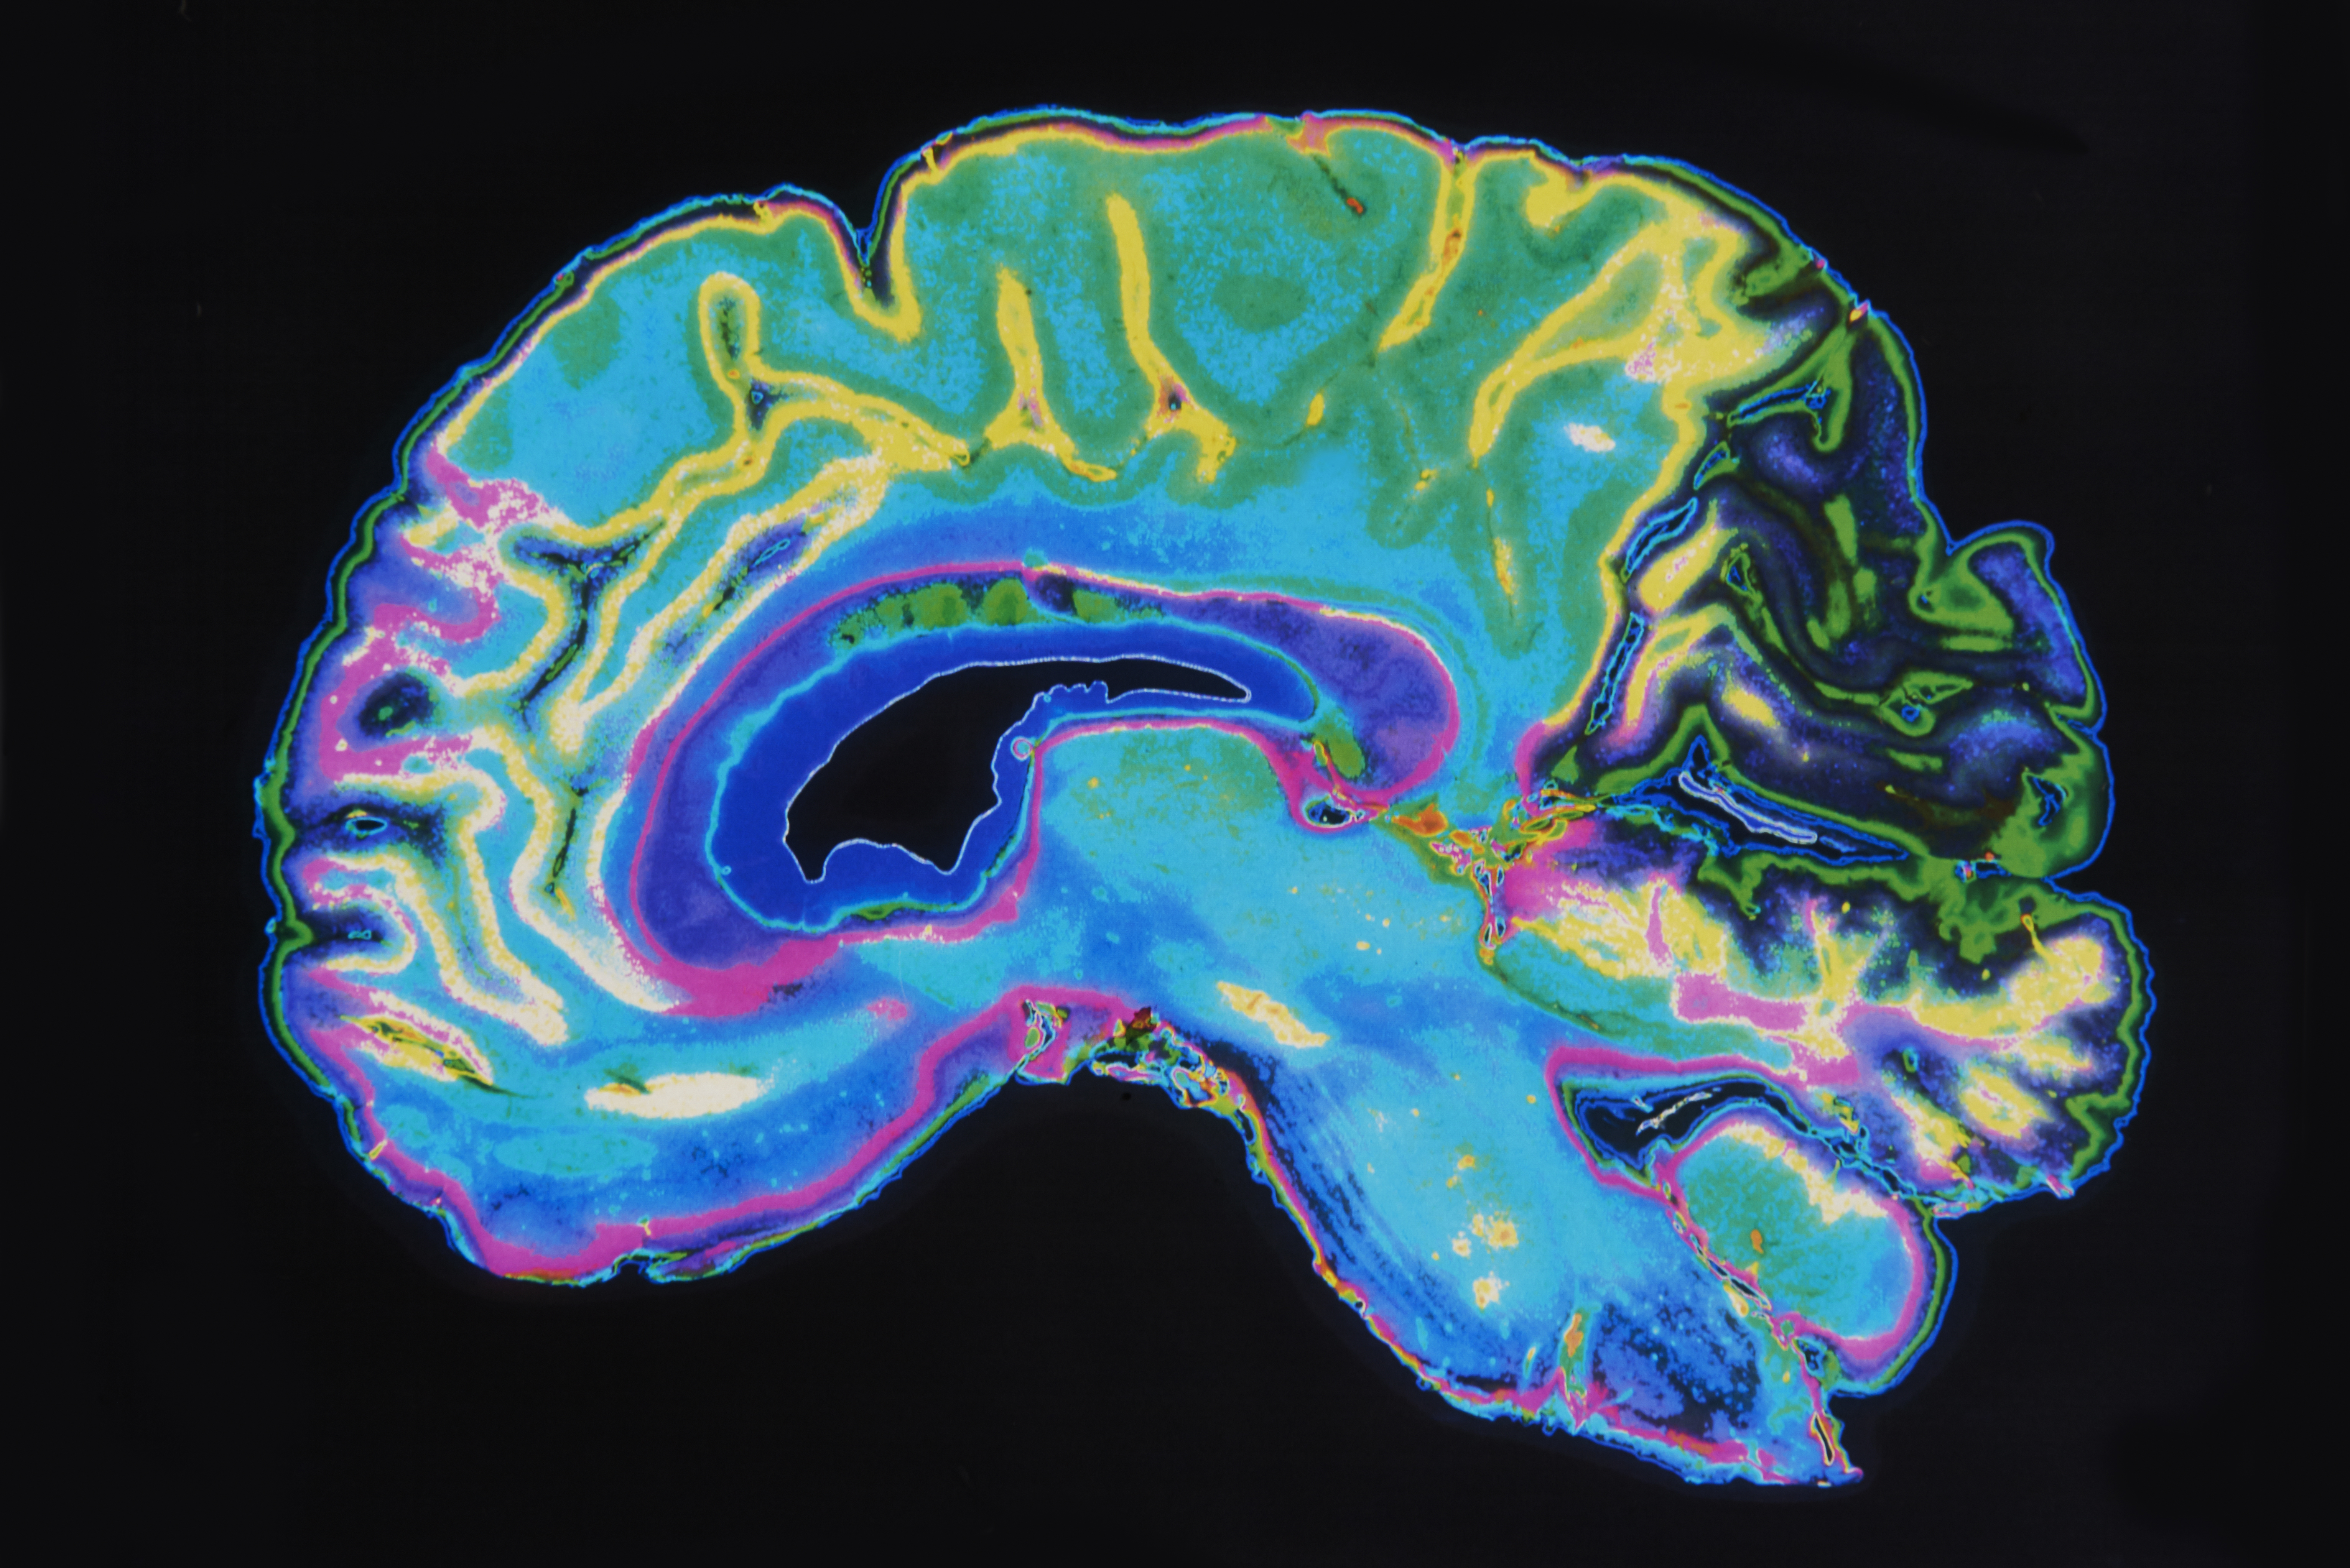 Researchers have shown that an enzyme called HDAC1 helps repair DNA damage and fight off age-related cognitive decline